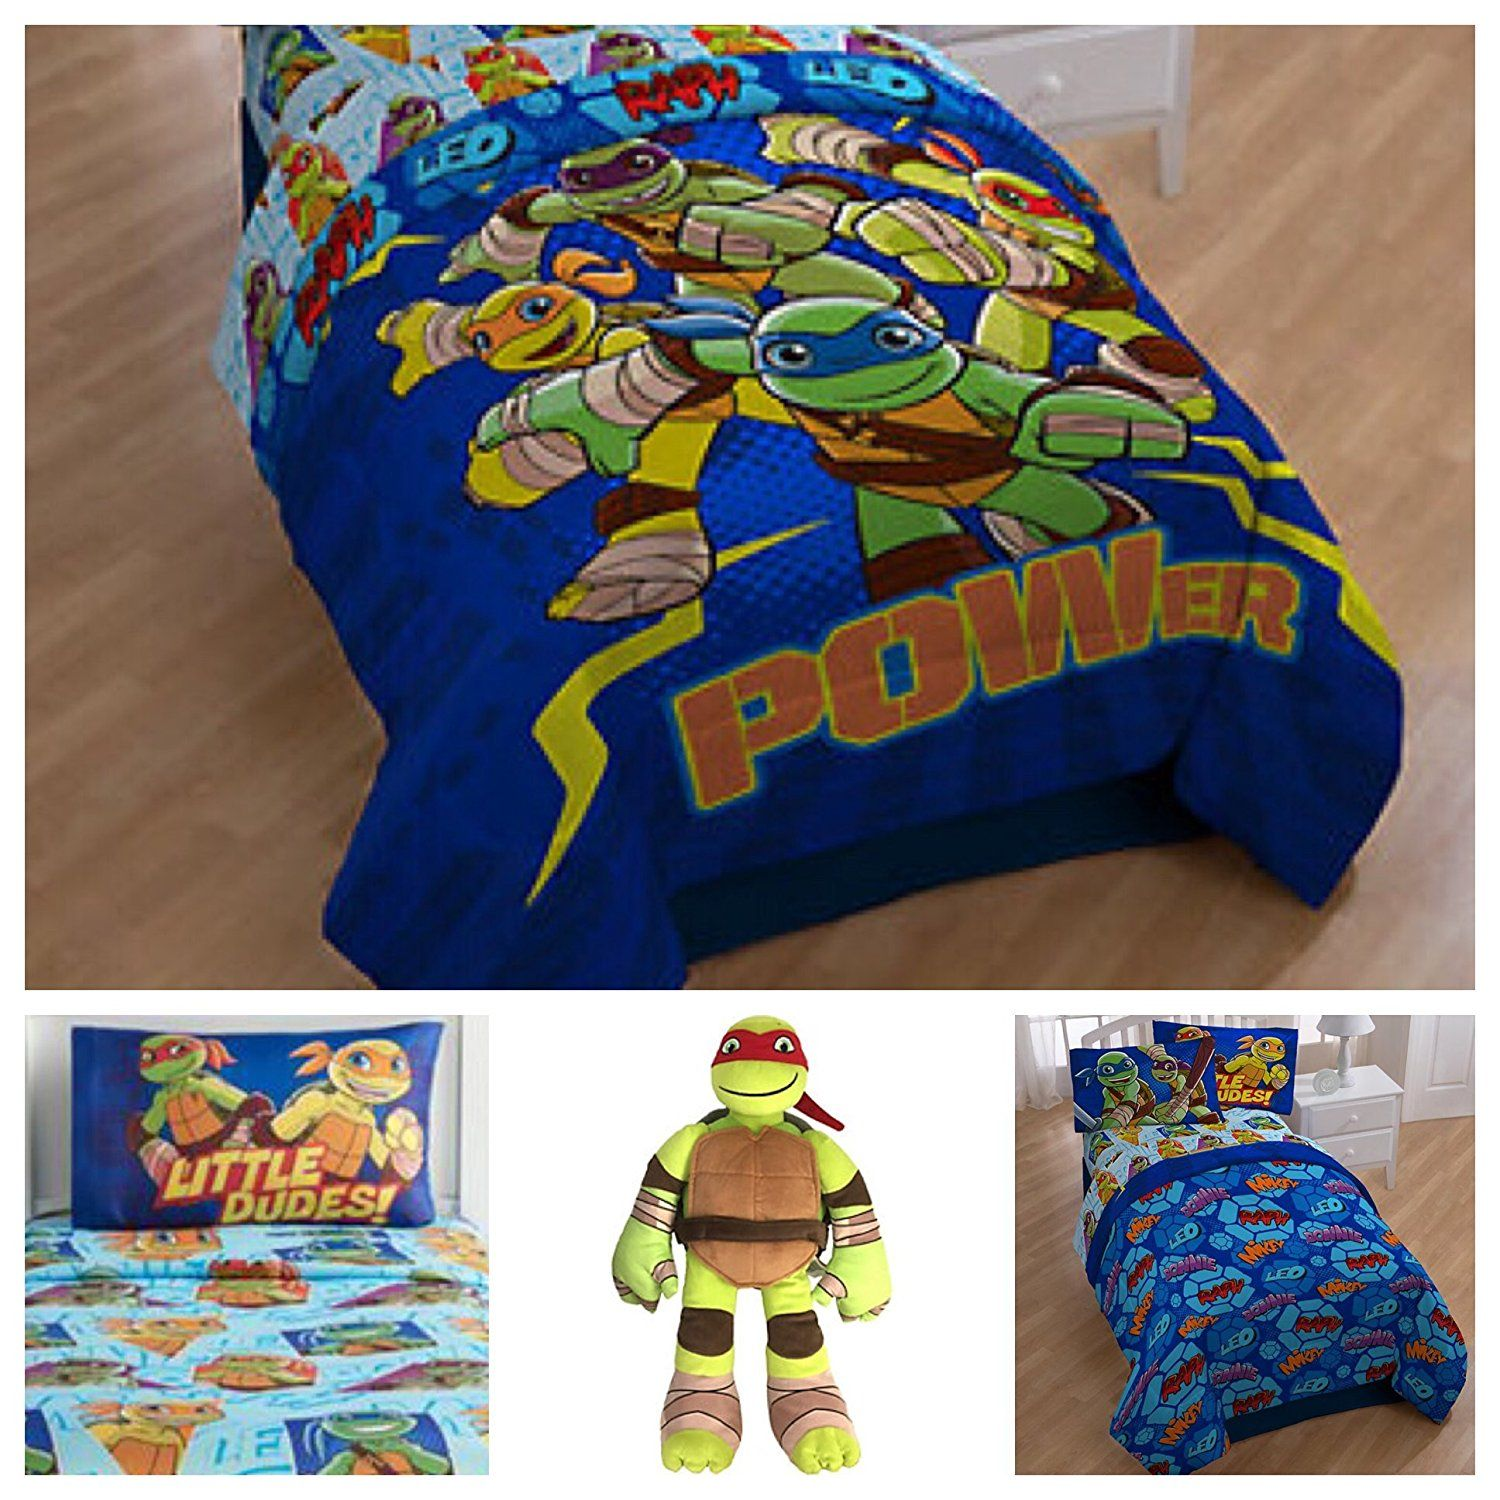 Teenage Mutant Ninja Turtles TMNT Bedding Comforter Set